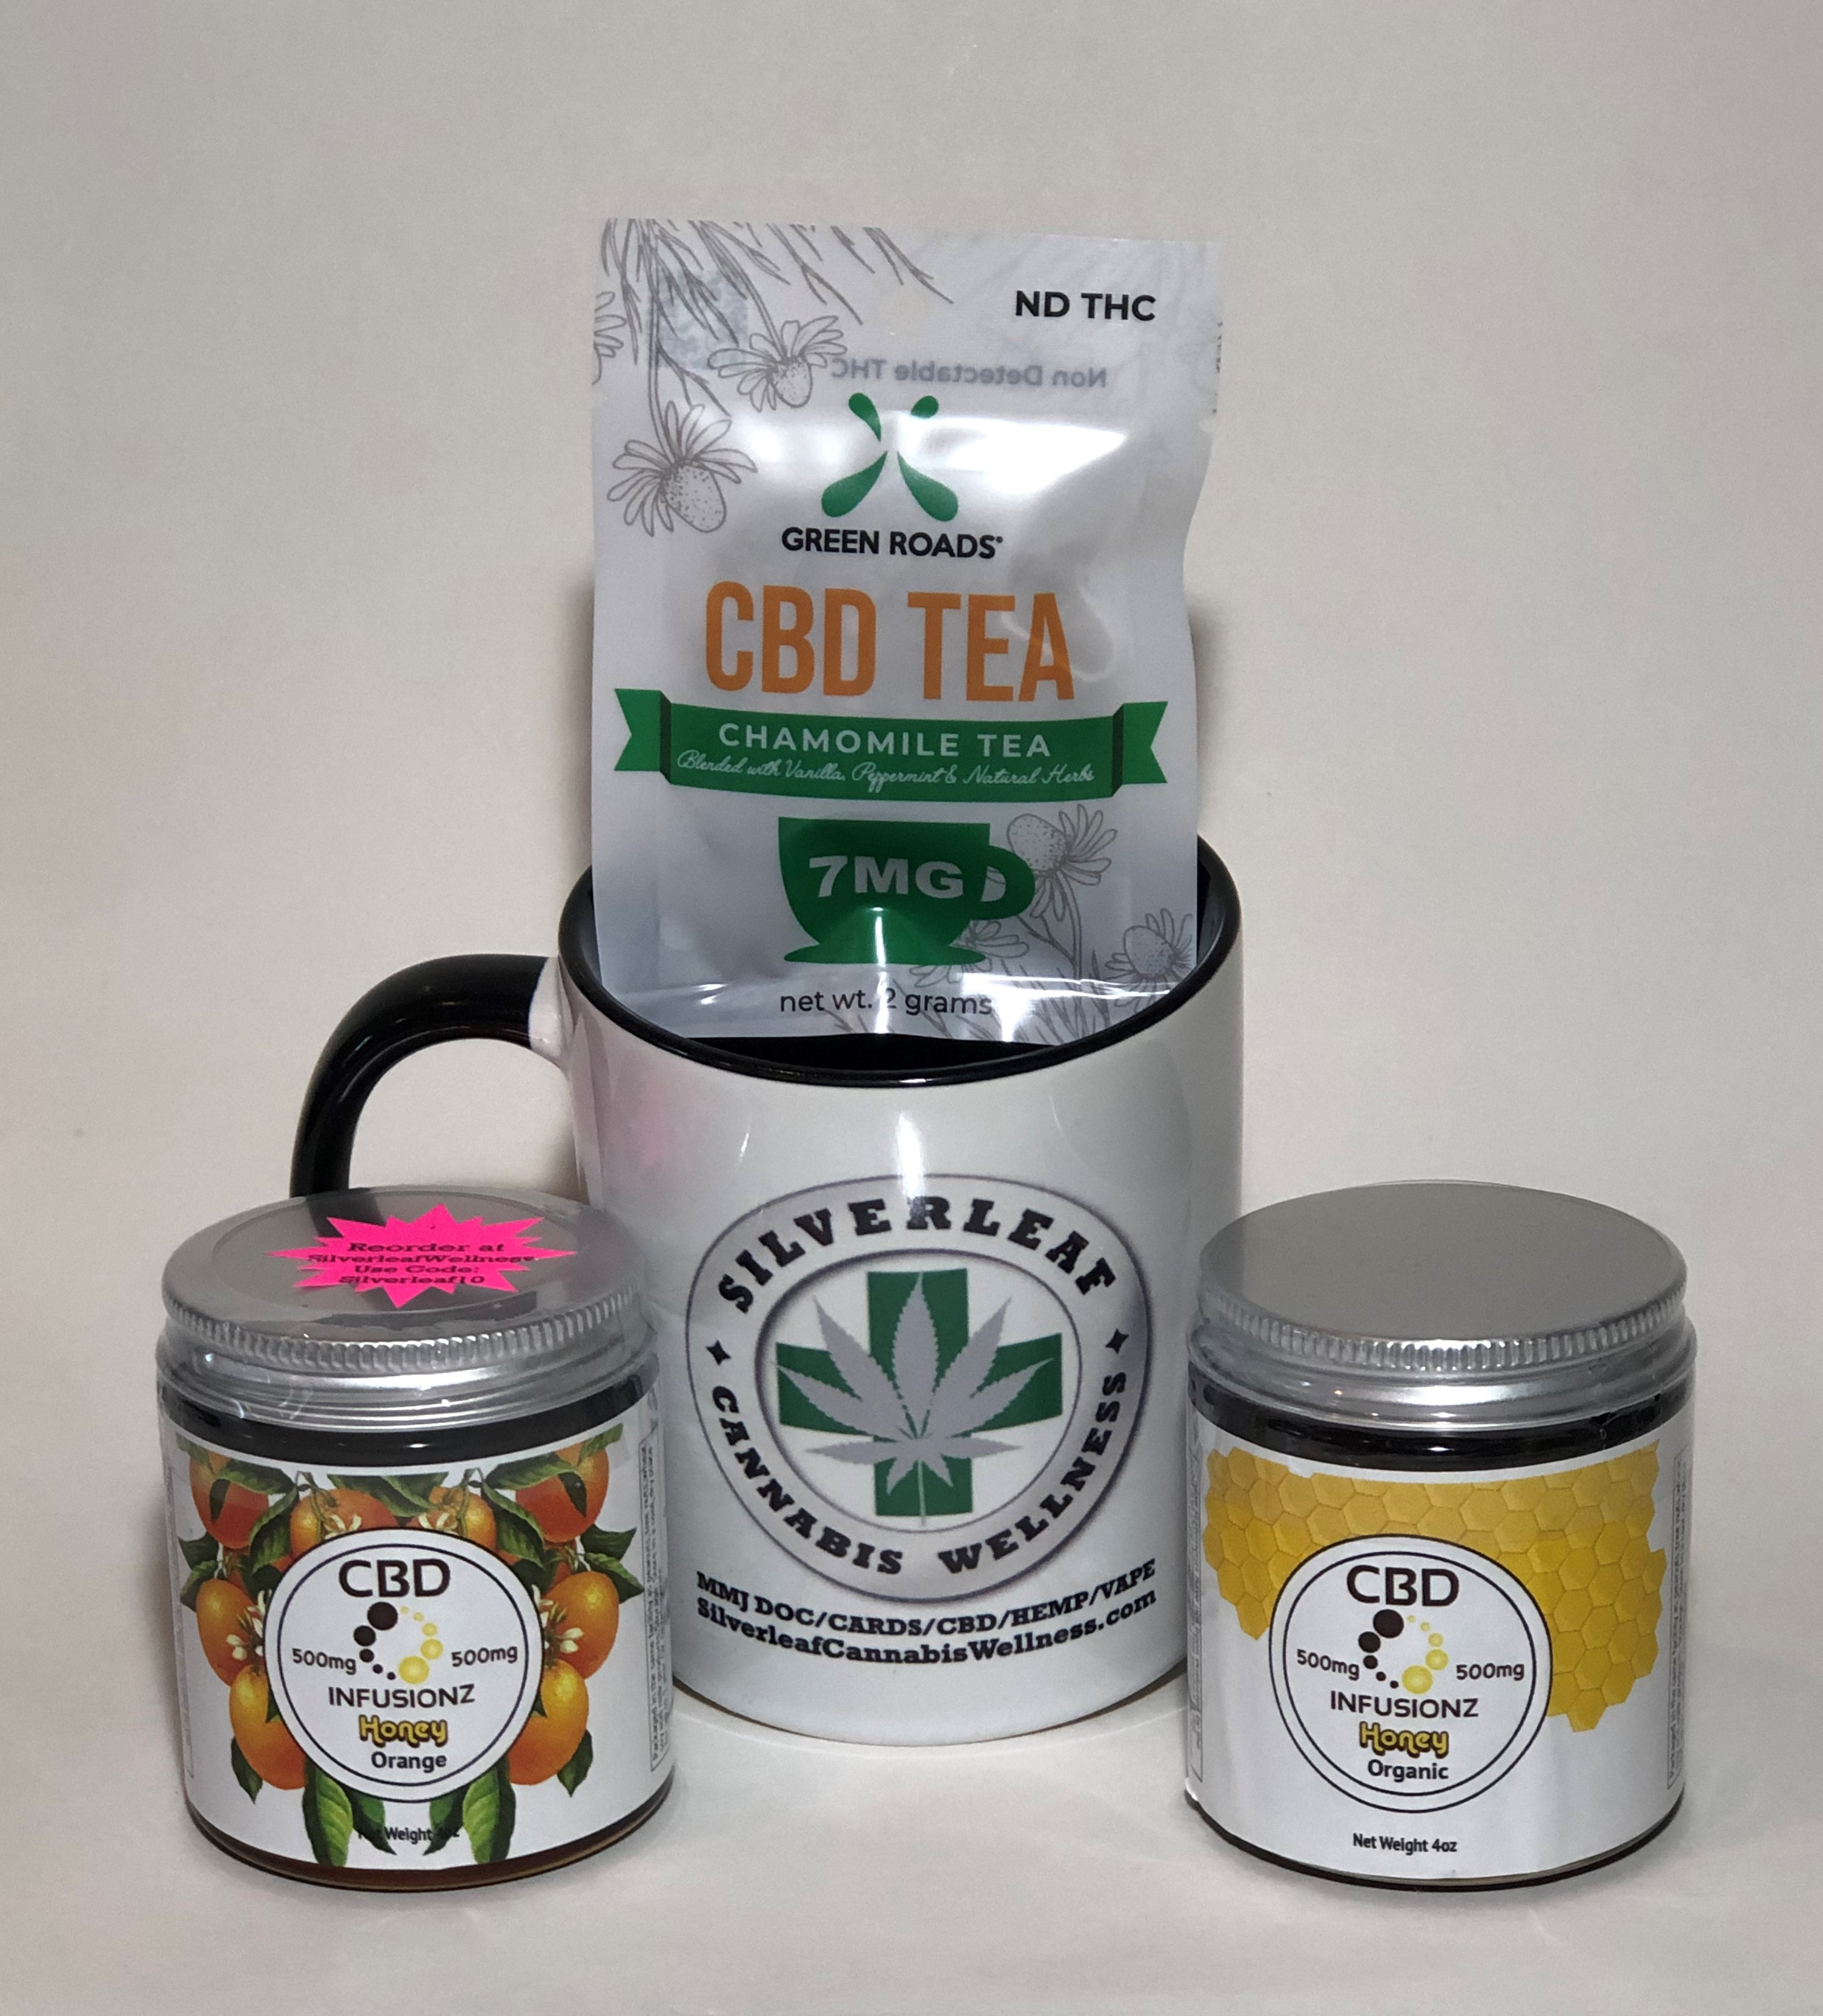 Green Roads - Chamomile Tea – 1bag/2grams/7mg *NOTE: Total Online Order  Must Exceed $20 to Ship